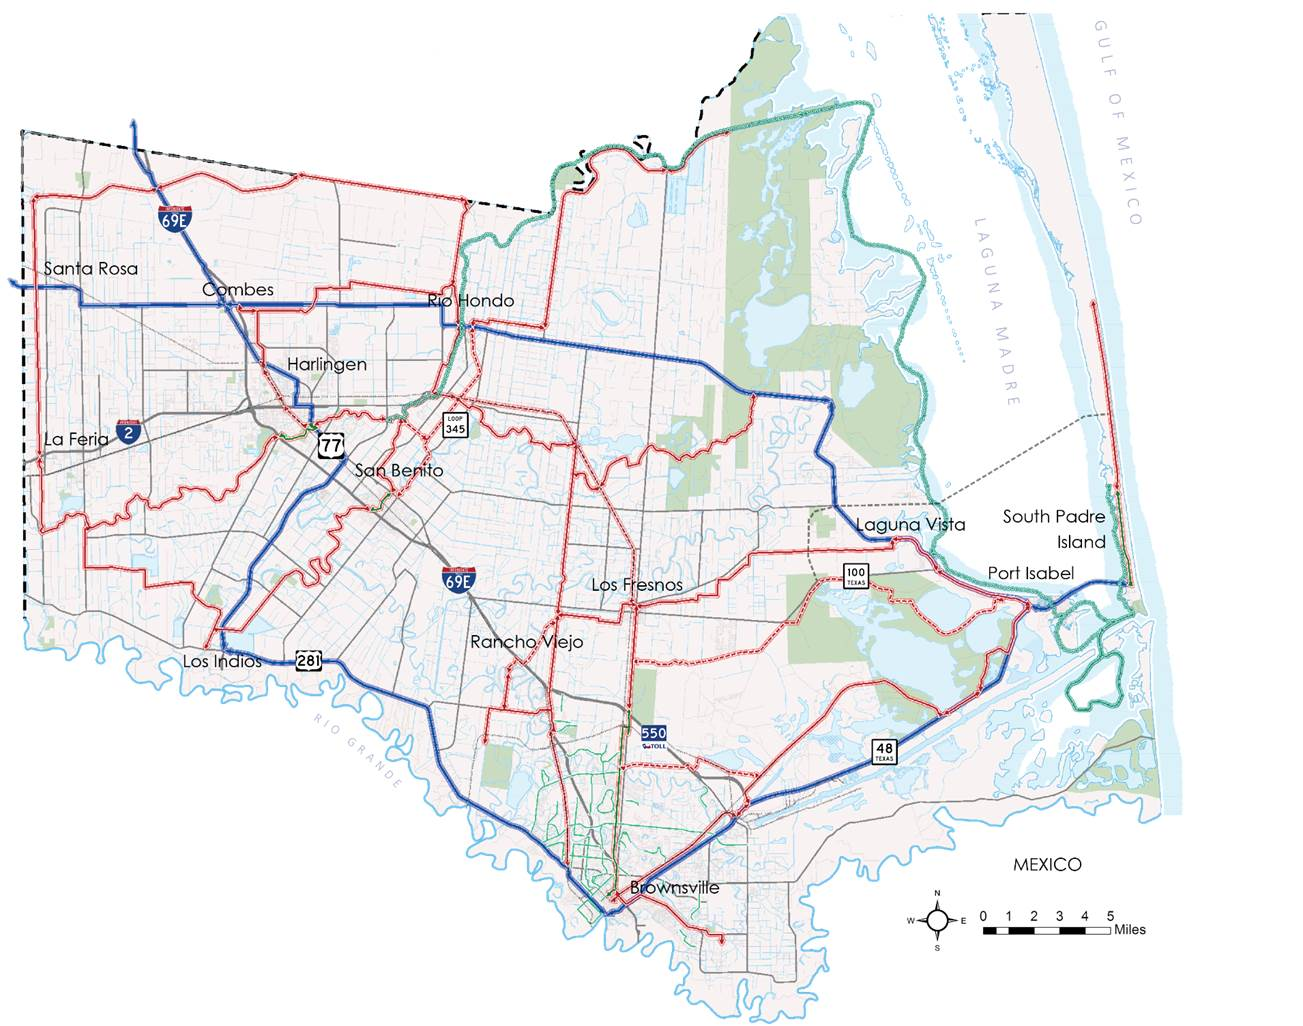 Envisioned Caracara Trail Network